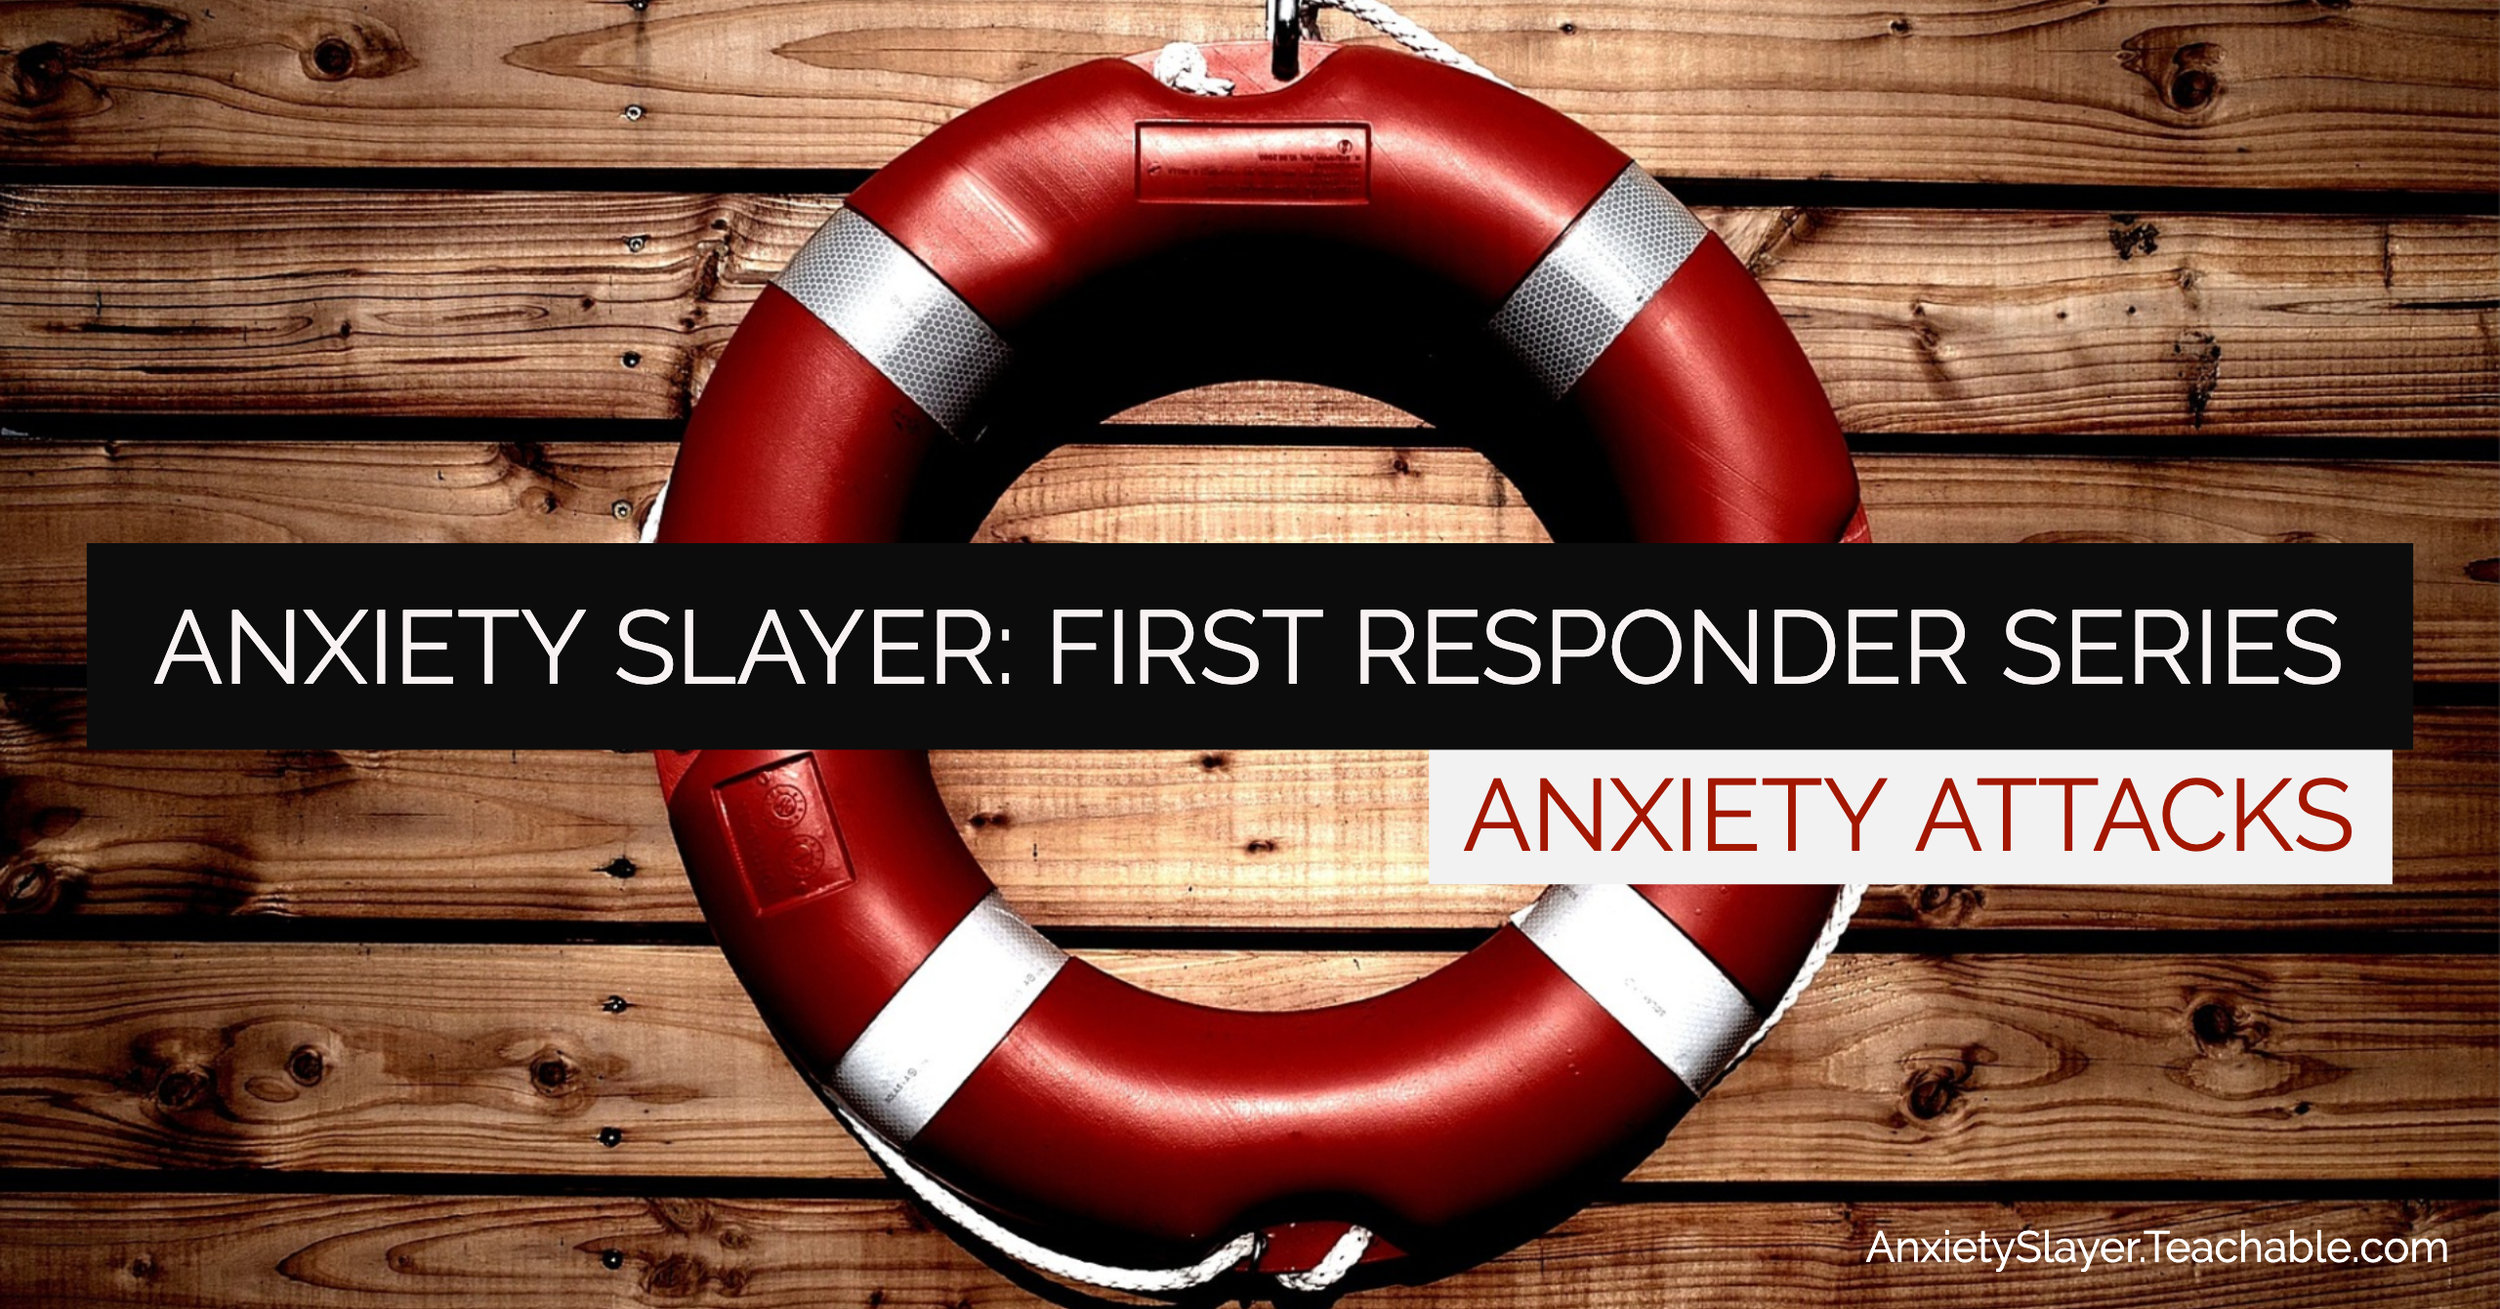 KNOW HOW TO STOP ANXIETY ATTACKS & RECLAIM YOUR LIFE - Do you find yourself living in fear of having an anxiety attack?Are you scared to leave your home because you feel anxiety could strike anywhere?Are you worried that anxiety attacks are affecting your relationships? Or might cost you your job?It doesn't have to be this way. You can know how to stop anxiety attacks and reclaim your life, and we can show you how.